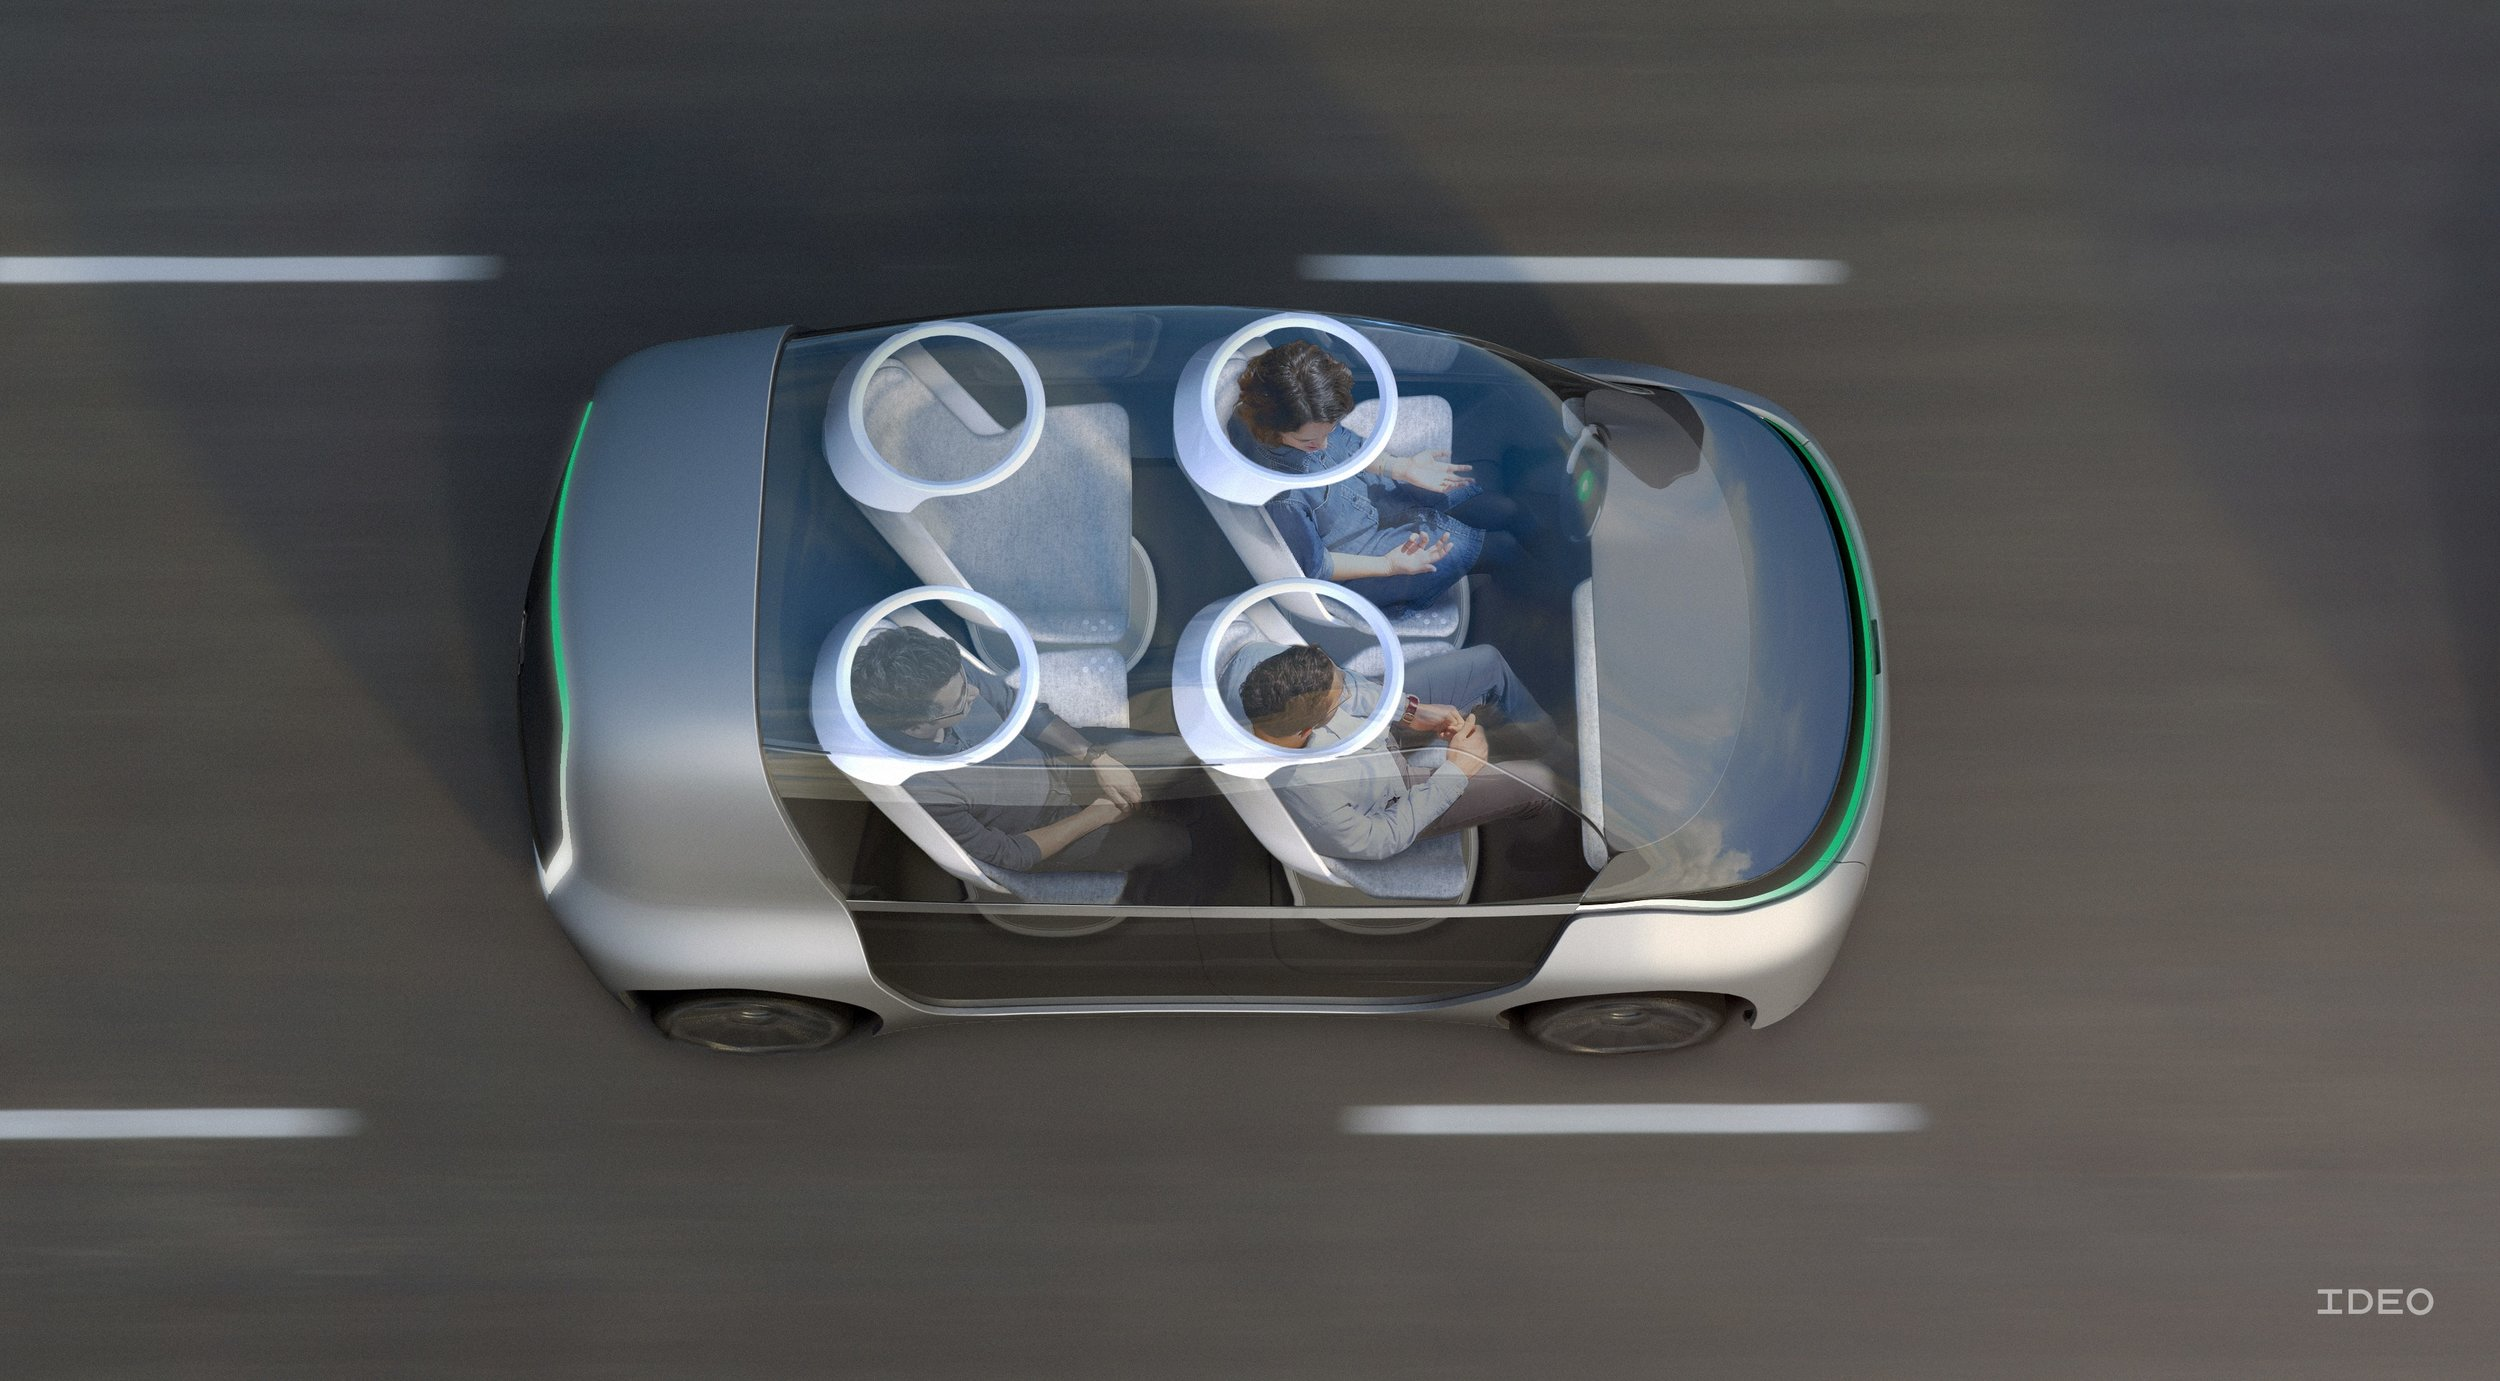 Providing shared vehicle occupants with a choice of being social or relaxing on their own will be key challenge in vehicle design for the next generation of vehicles.